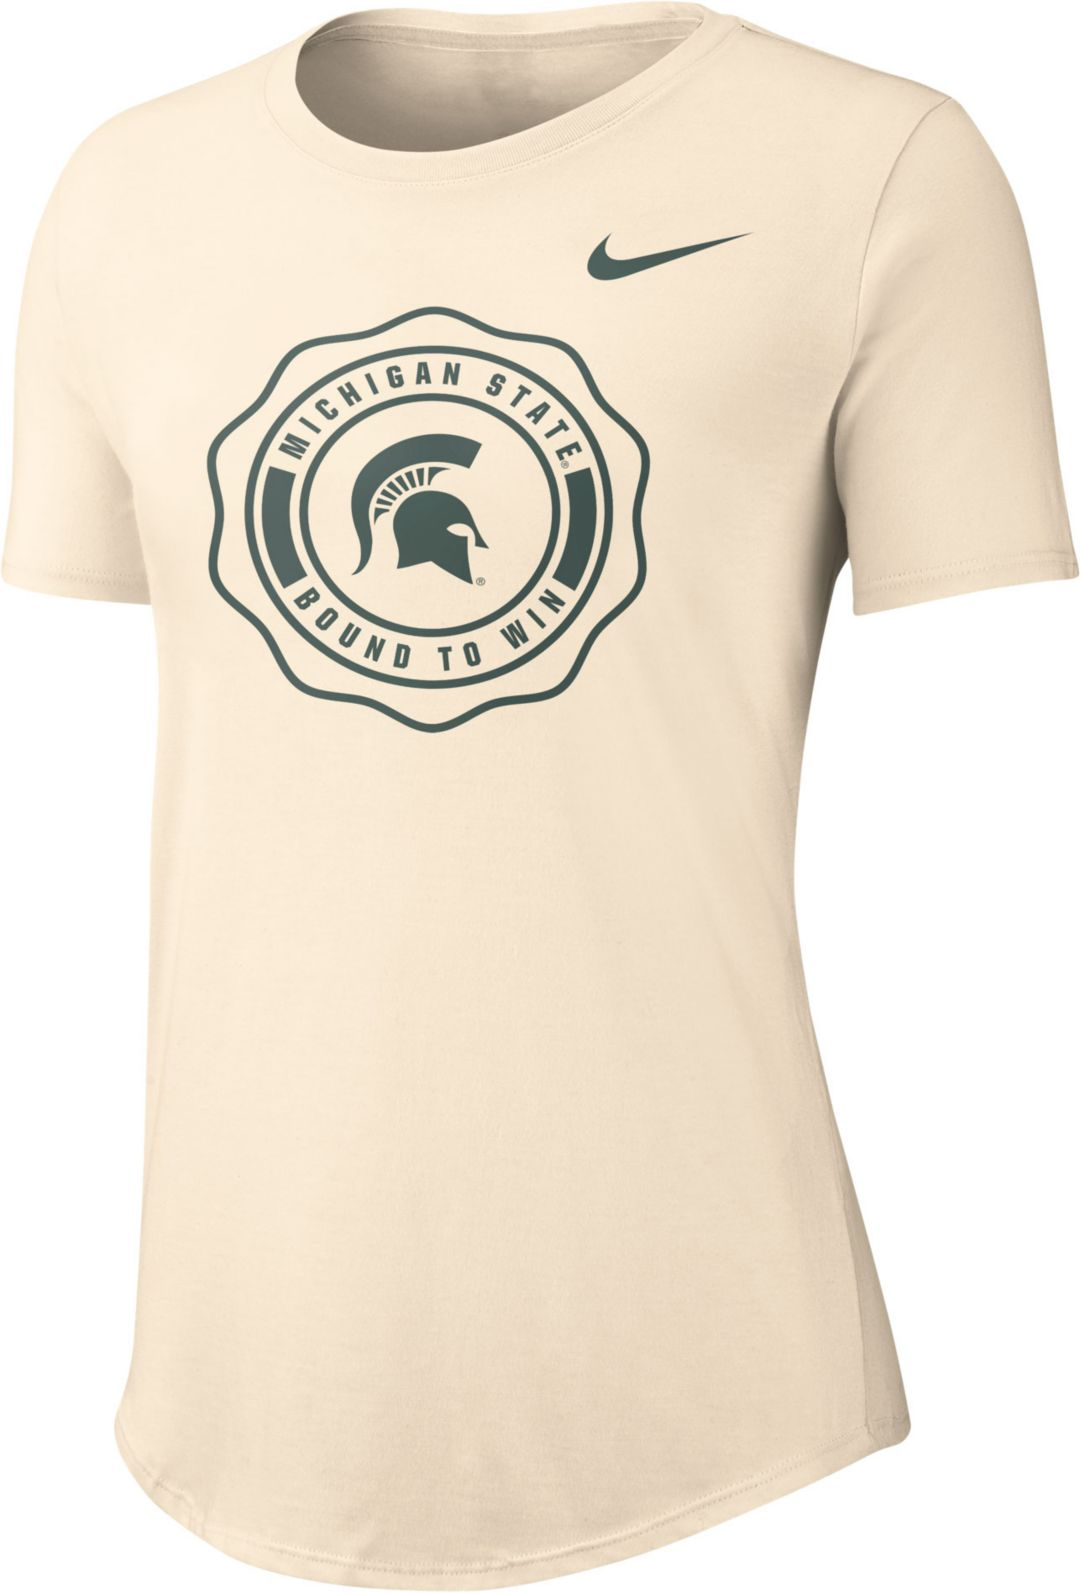 c1ff7762 Nike Women's Michigan State Spartans Rival Tri-Blend White T-Shirt